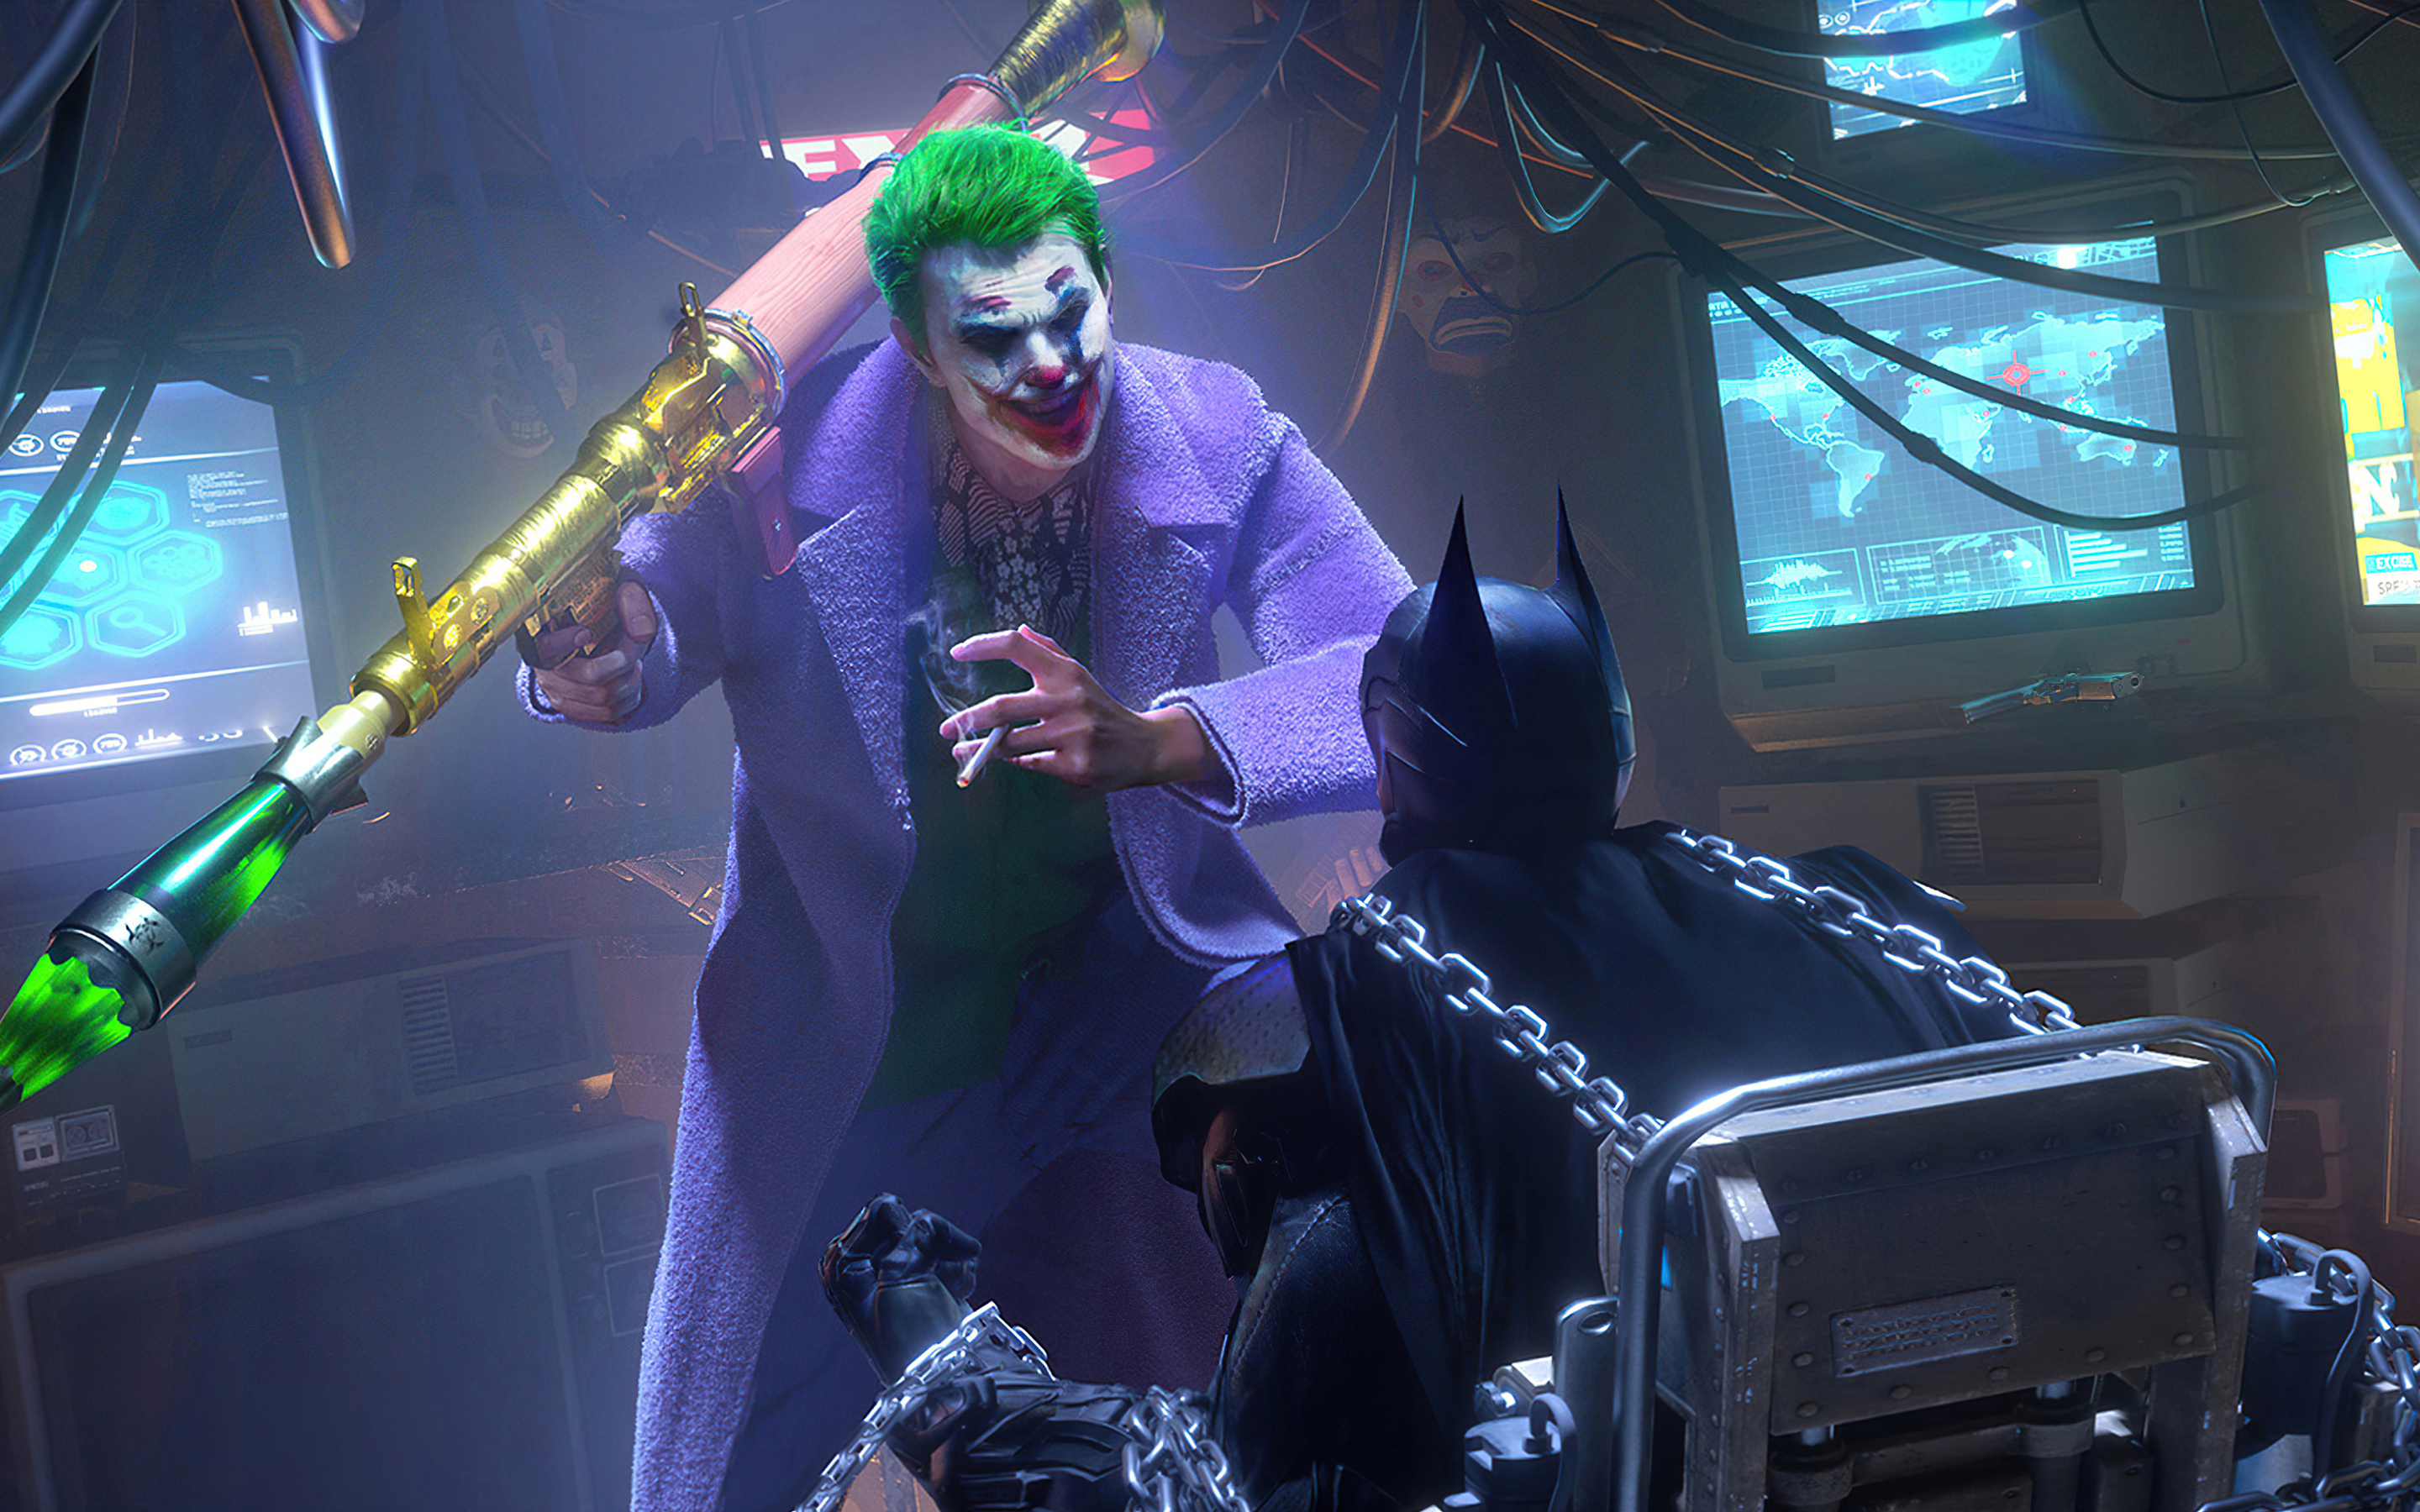 joker-x-batman-4k-zu.jpg